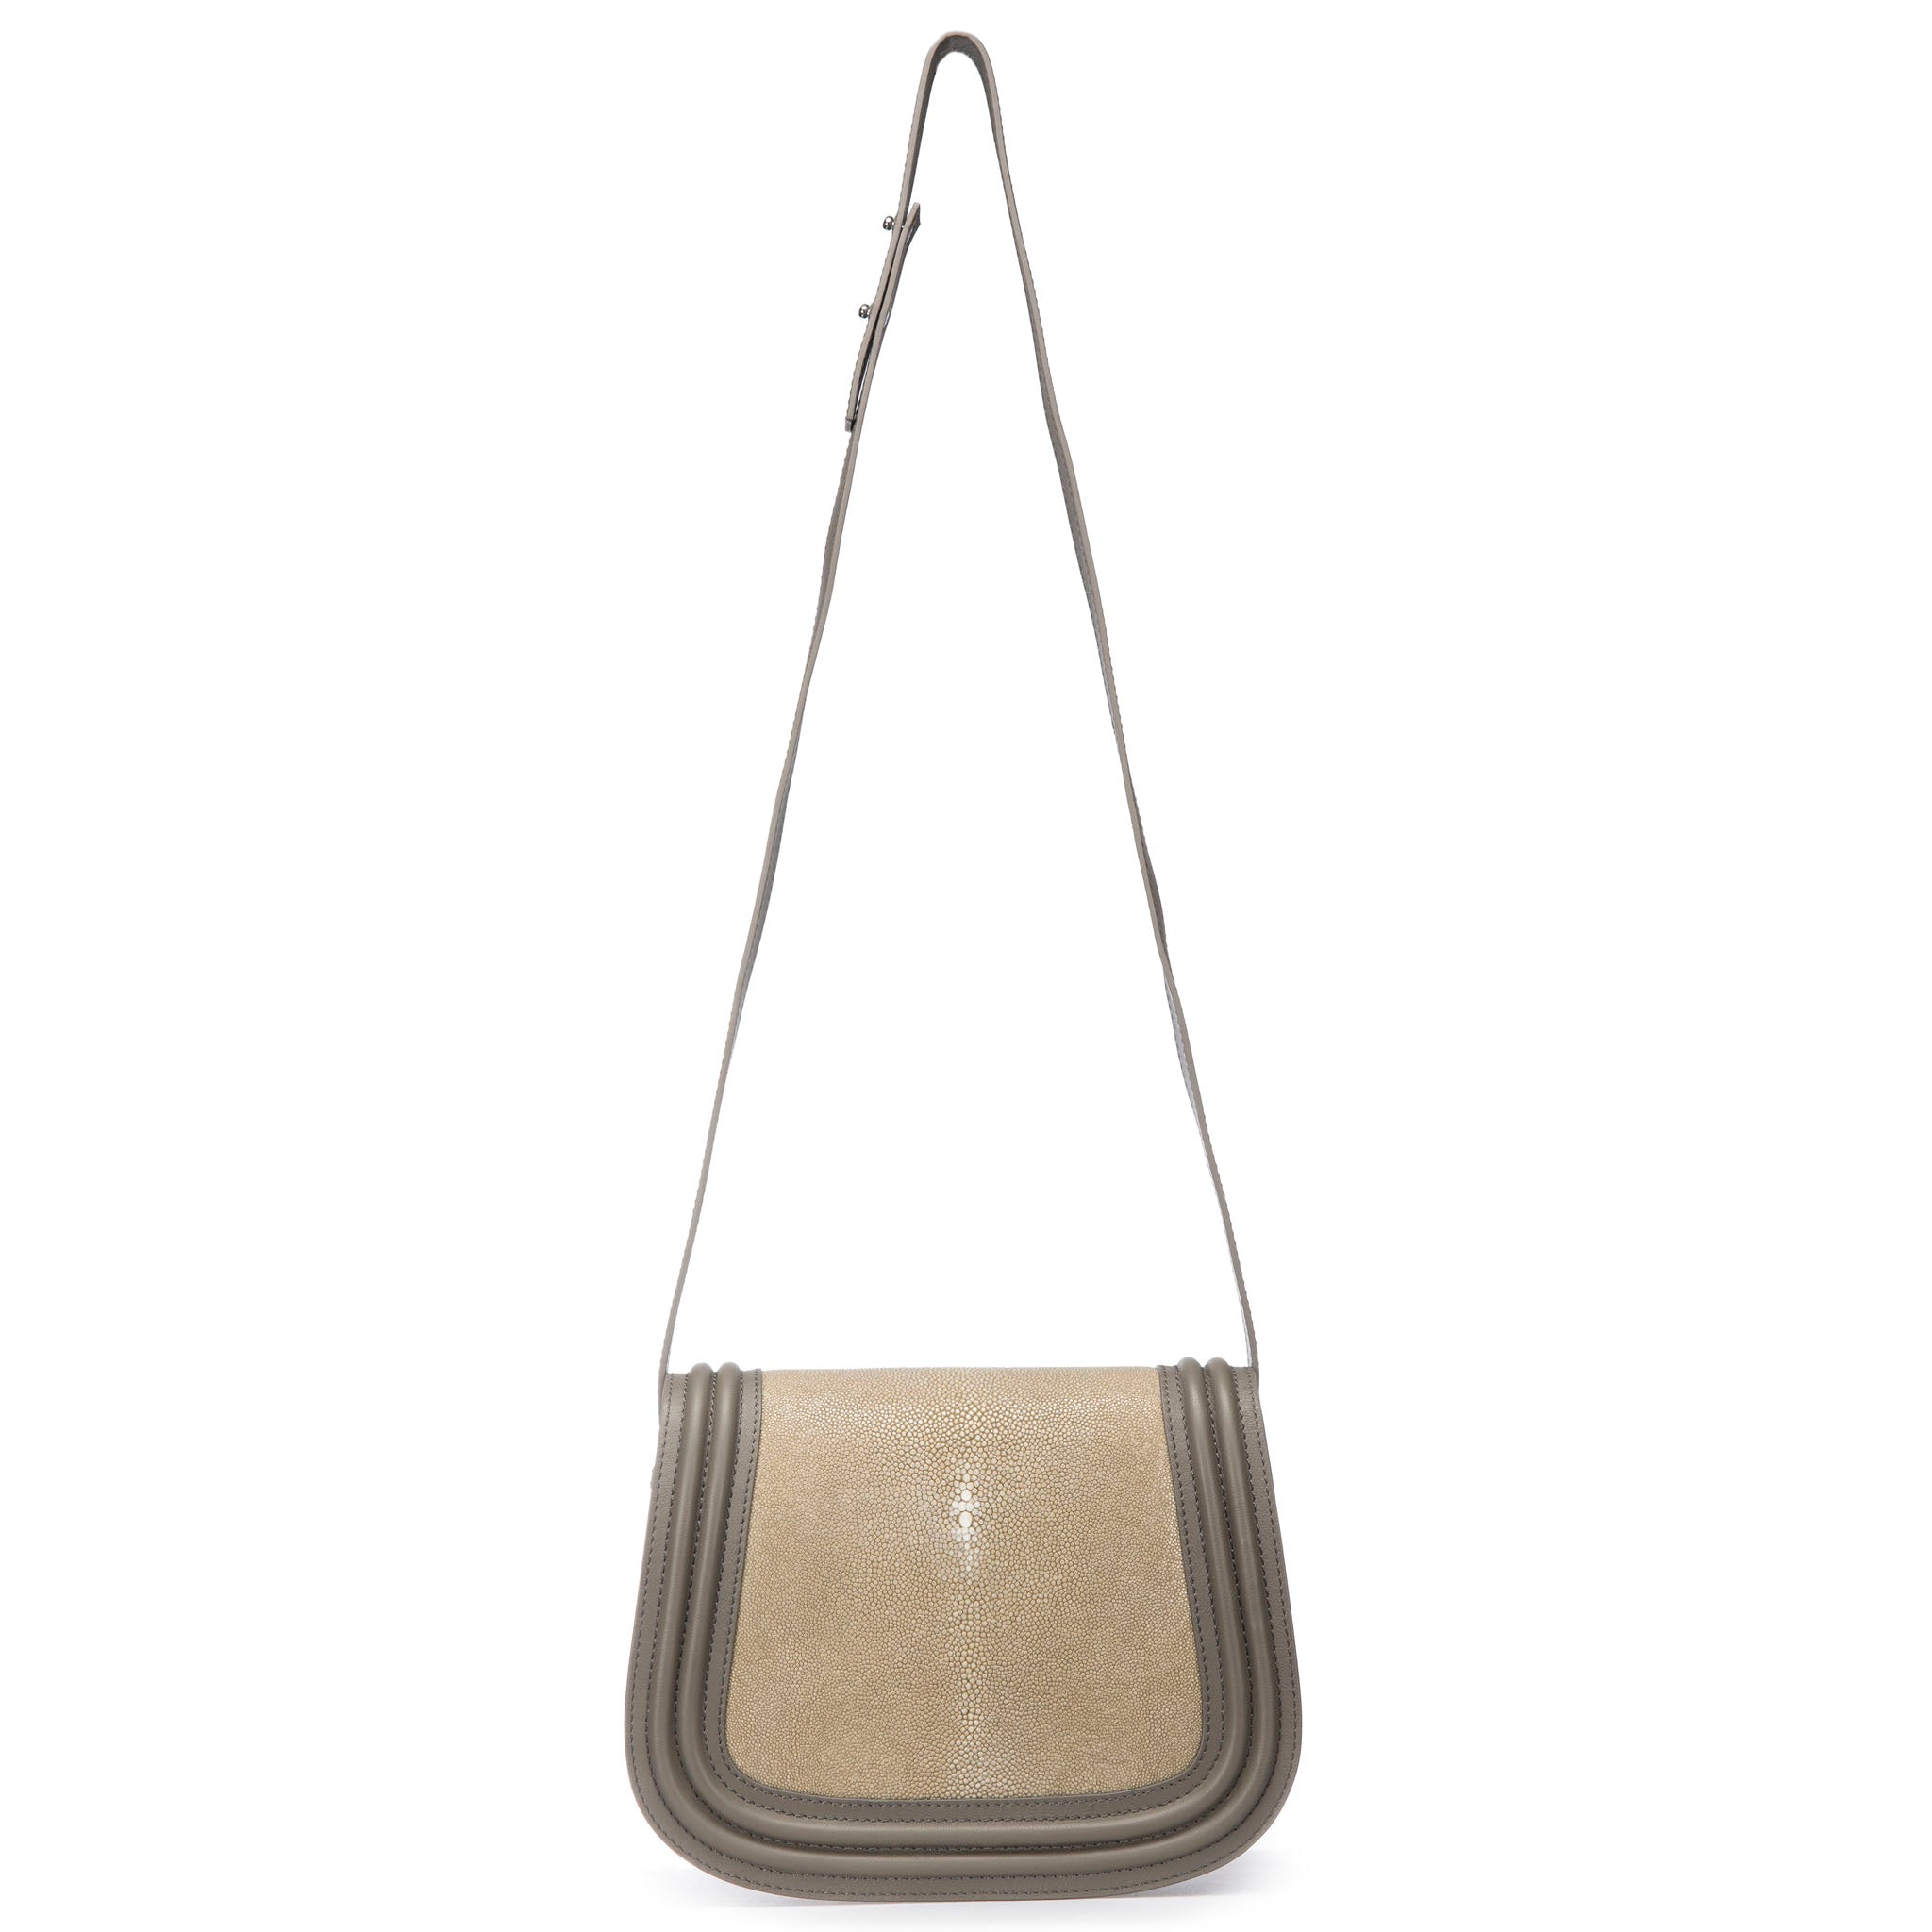 Smoke Corded Leather Framing Shagreen Front Panel Saddle Bag Shoulder Strap View Hazel - Vivo Direct